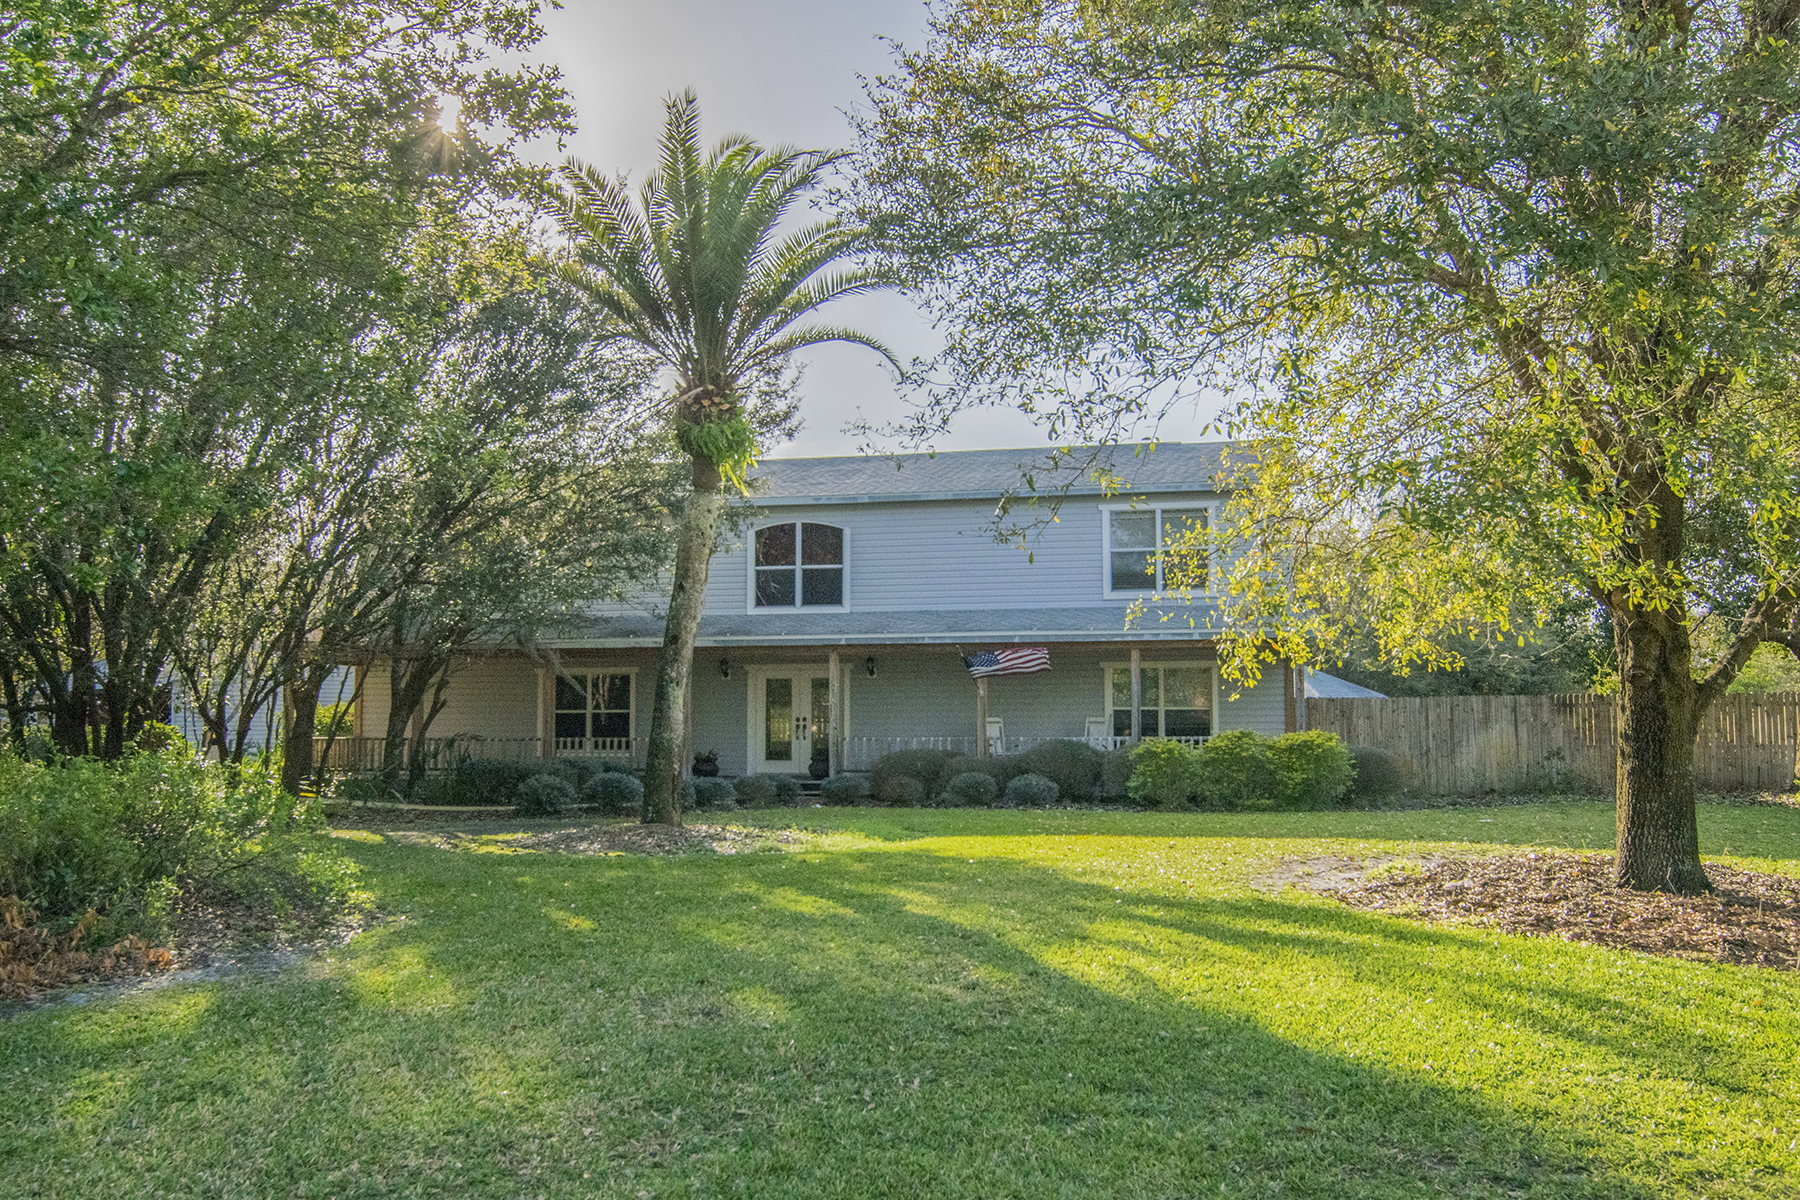 Single Family Home for Sale at NEW PORT RICHEY 8633 Airway Blvd New Port Richey, Florida, 34654 United States